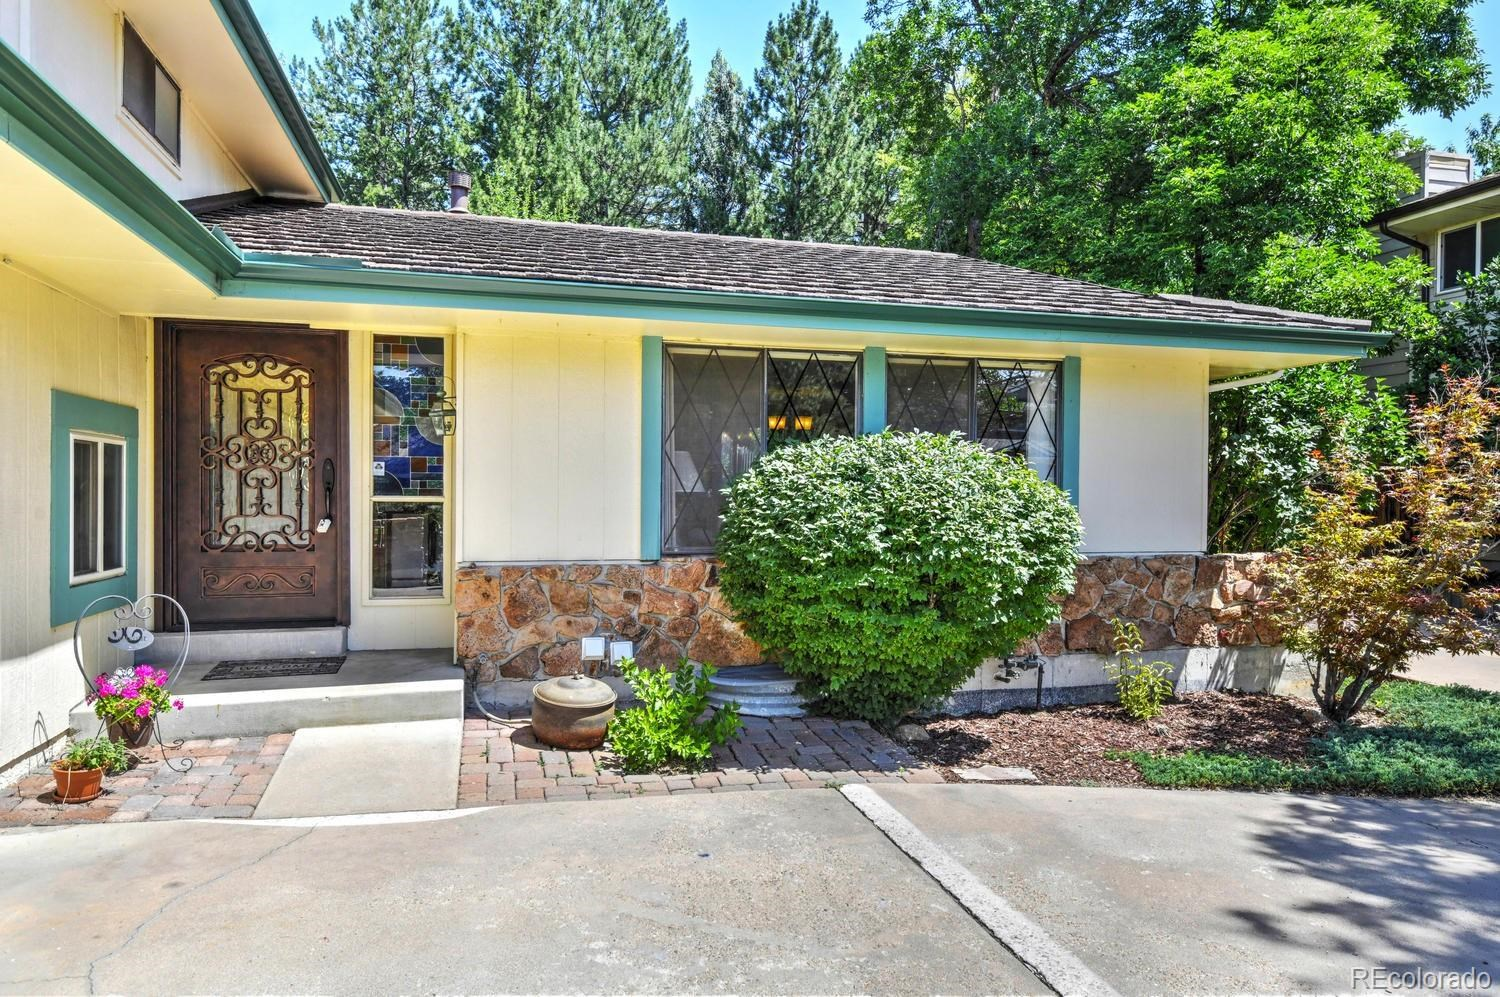 MLS# 5118504 - 3 - 4765 W 101st Place, Westminster, CO 80031